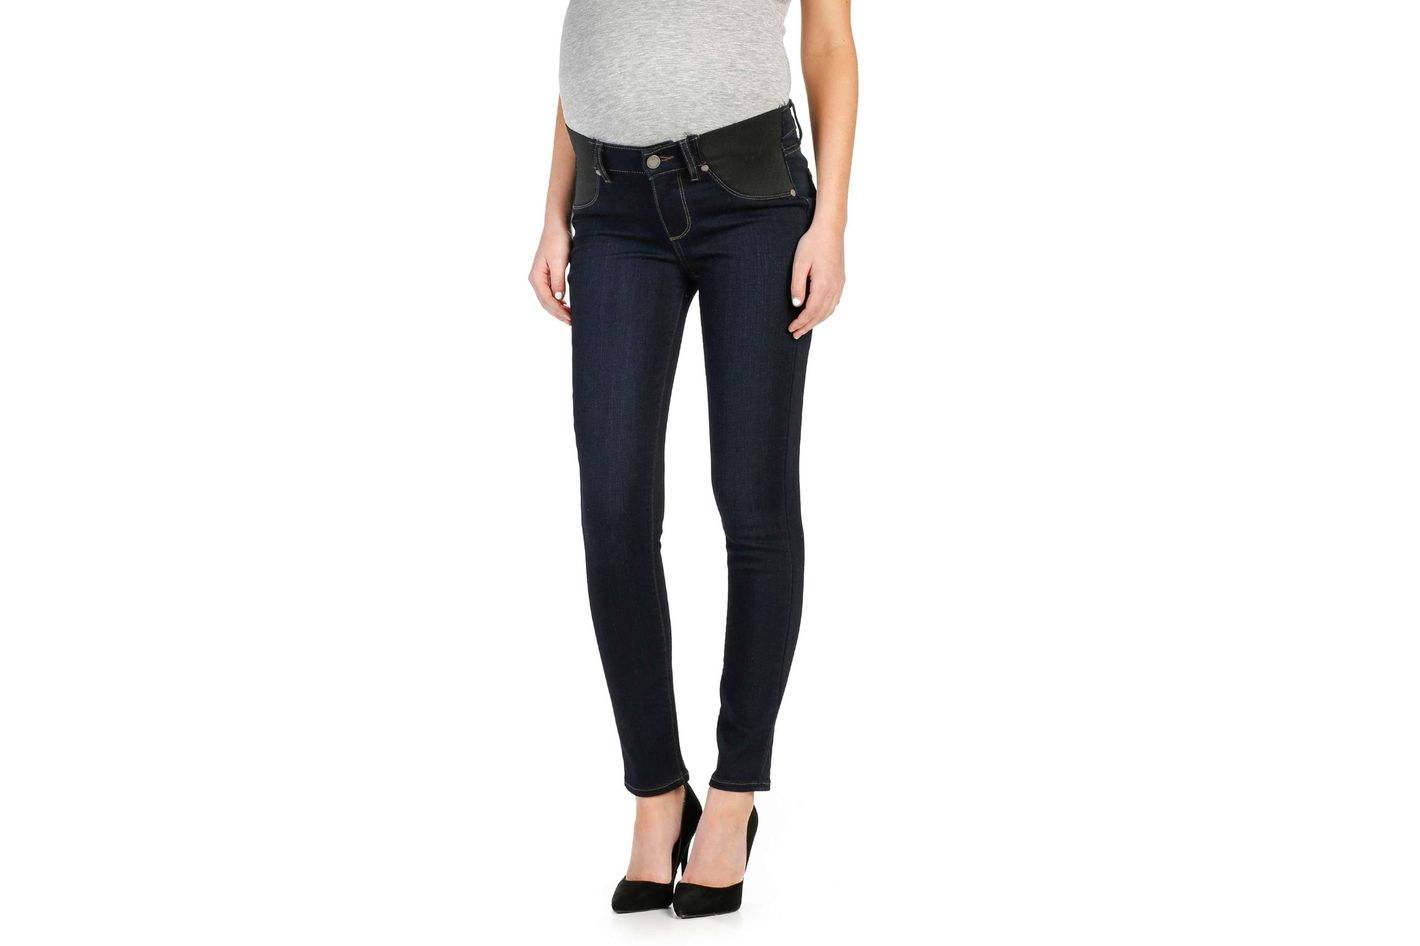 17b1f4c6976 Paige Transcend Verdugo Ankle Skinny Maternity Jeans